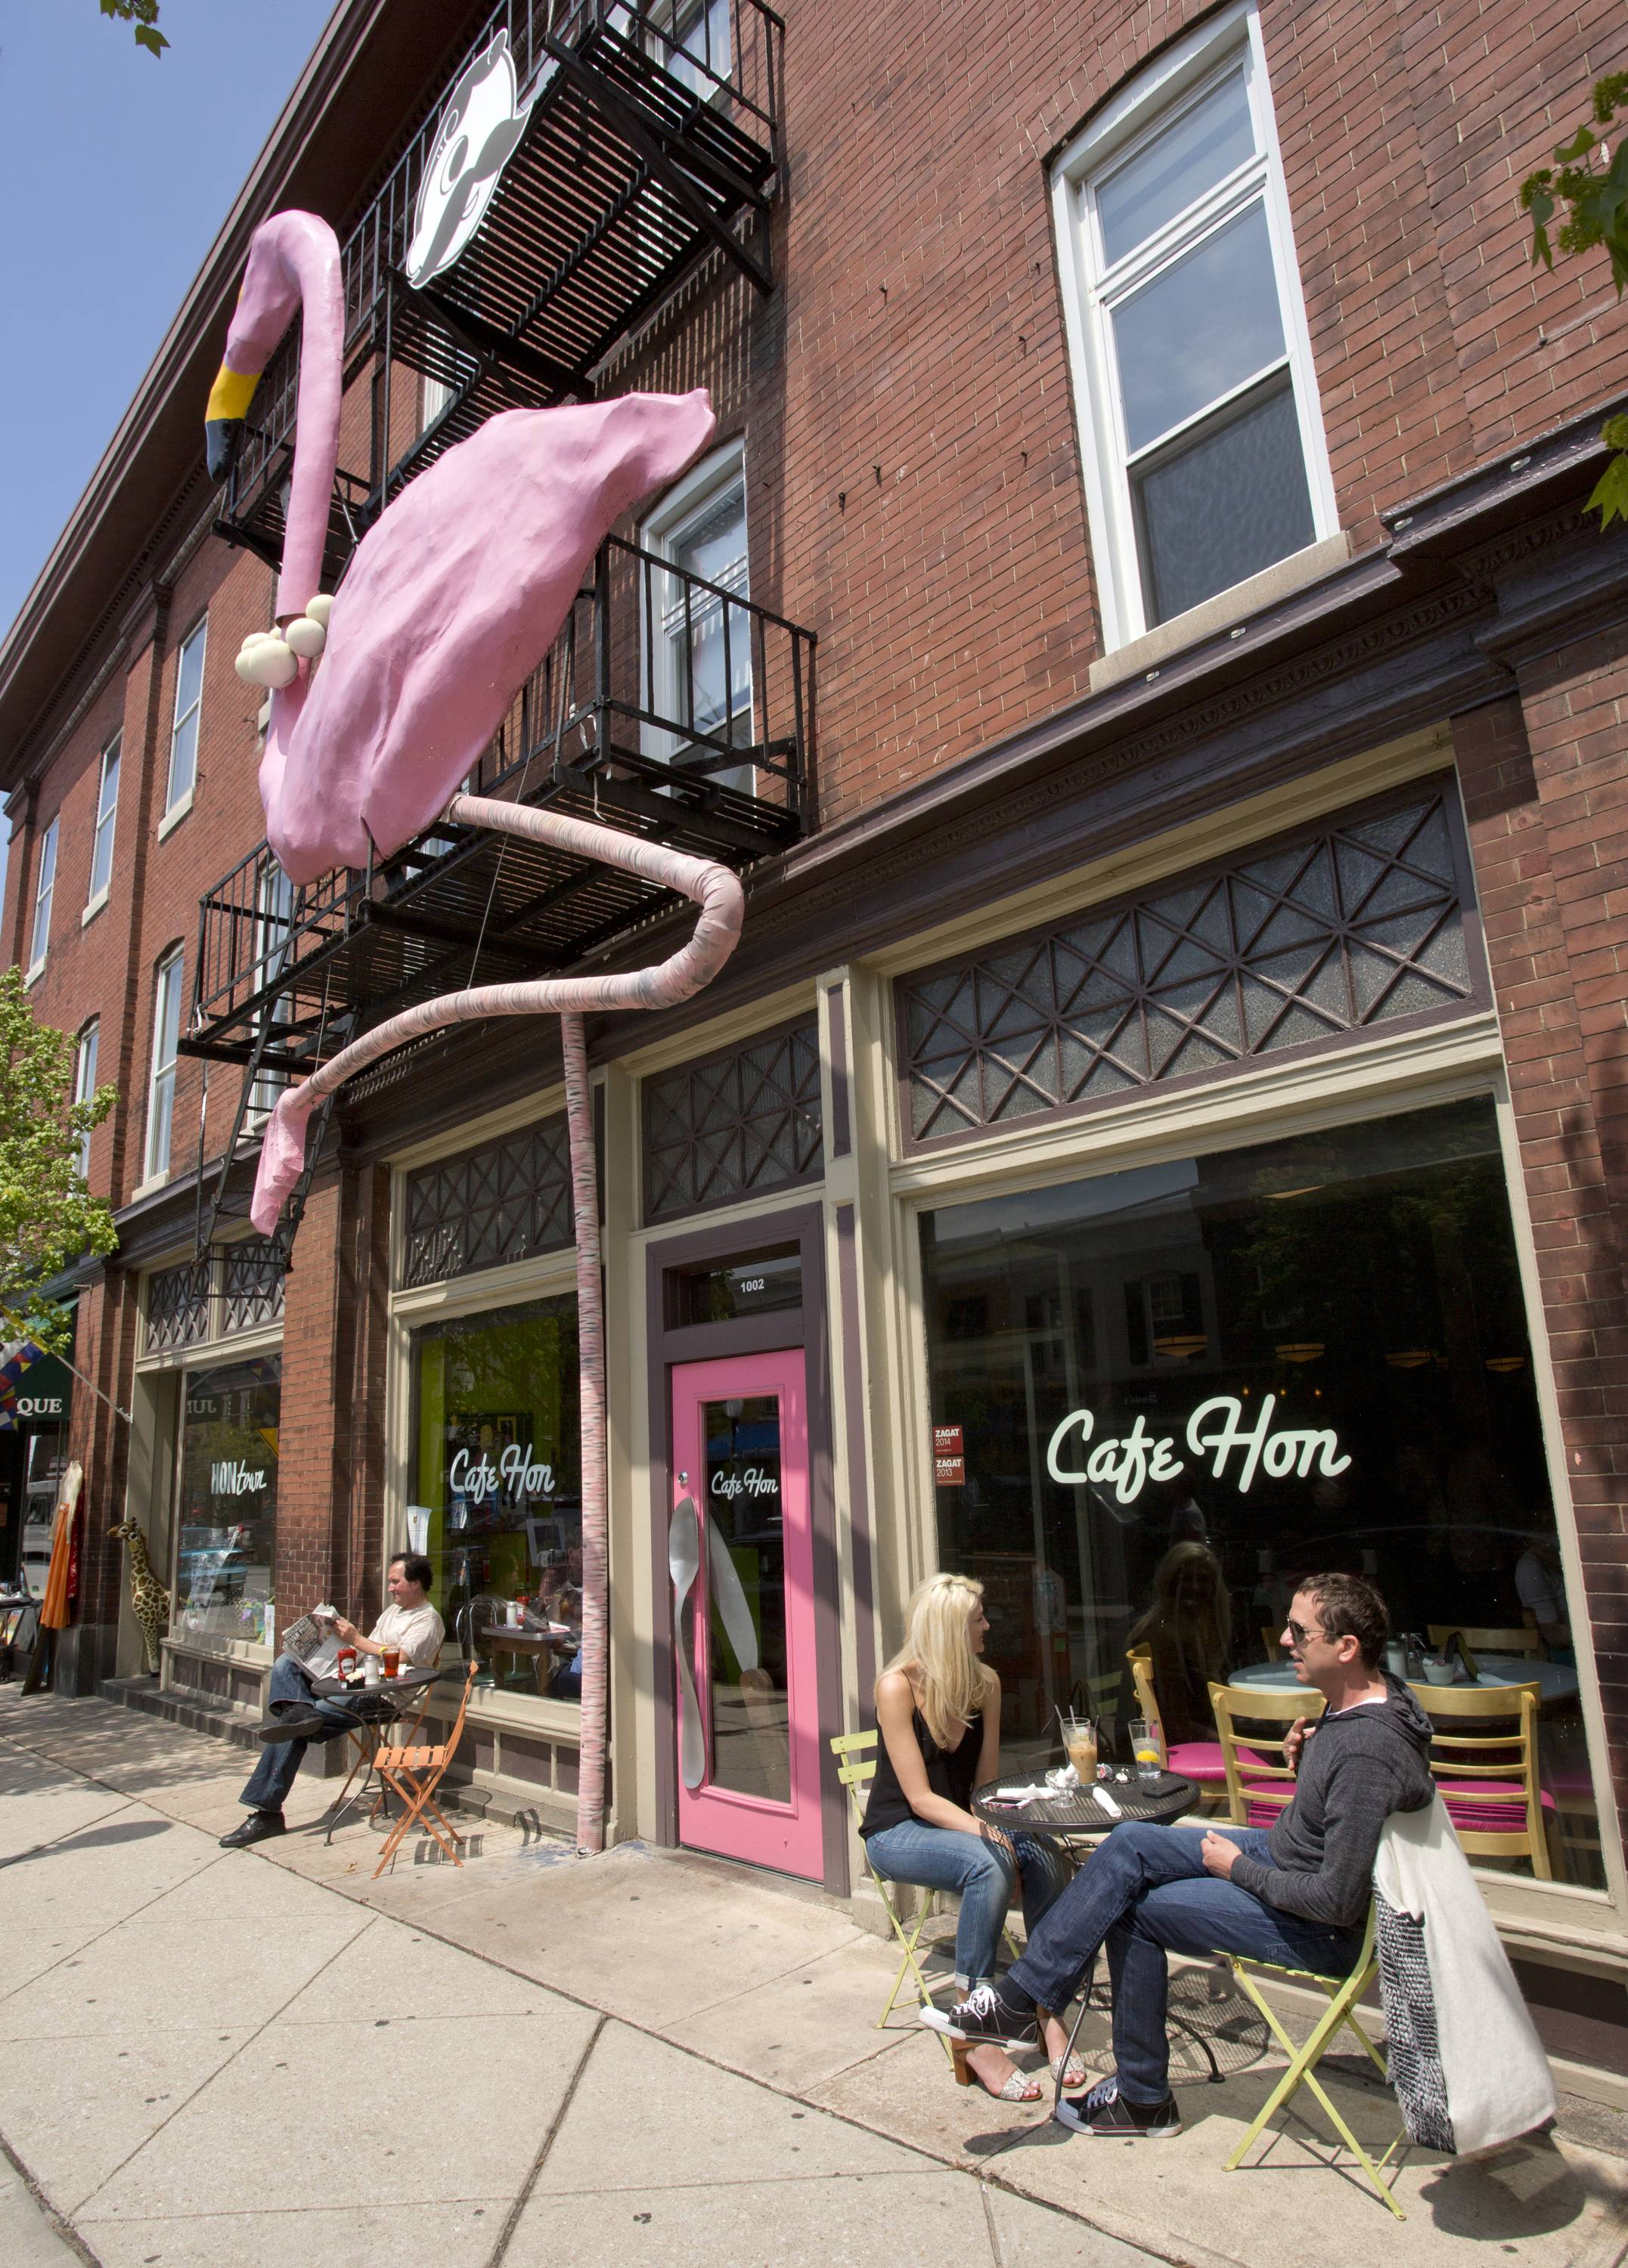 This giant pink flamingo sits outside Cafe Hon, an eatery along West 36th Street in the Hampden neighborhood of Baltimore. The neighborhood is known as a place where hipsters and kitsch Baltimore culture converge, and West 36th Street is lined with restaurants, vintage shops and antiques stores.